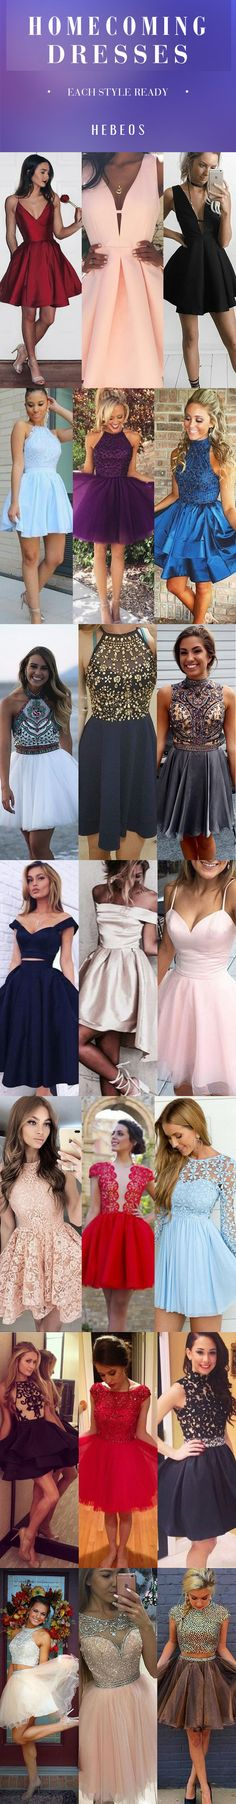 Buy the latest Homecoming Dresses For cheap prices, We carry the latest trends in Homecoming Dresses to show off that fun and flirty style of yours. Homecoming Outfits, Cheap Homecoming Dresses, Hoco Dresses, Dance Dresses, Ball Dresses, Pretty Dresses, Beautiful Dresses, Casual Dresses, Fashion Dresses